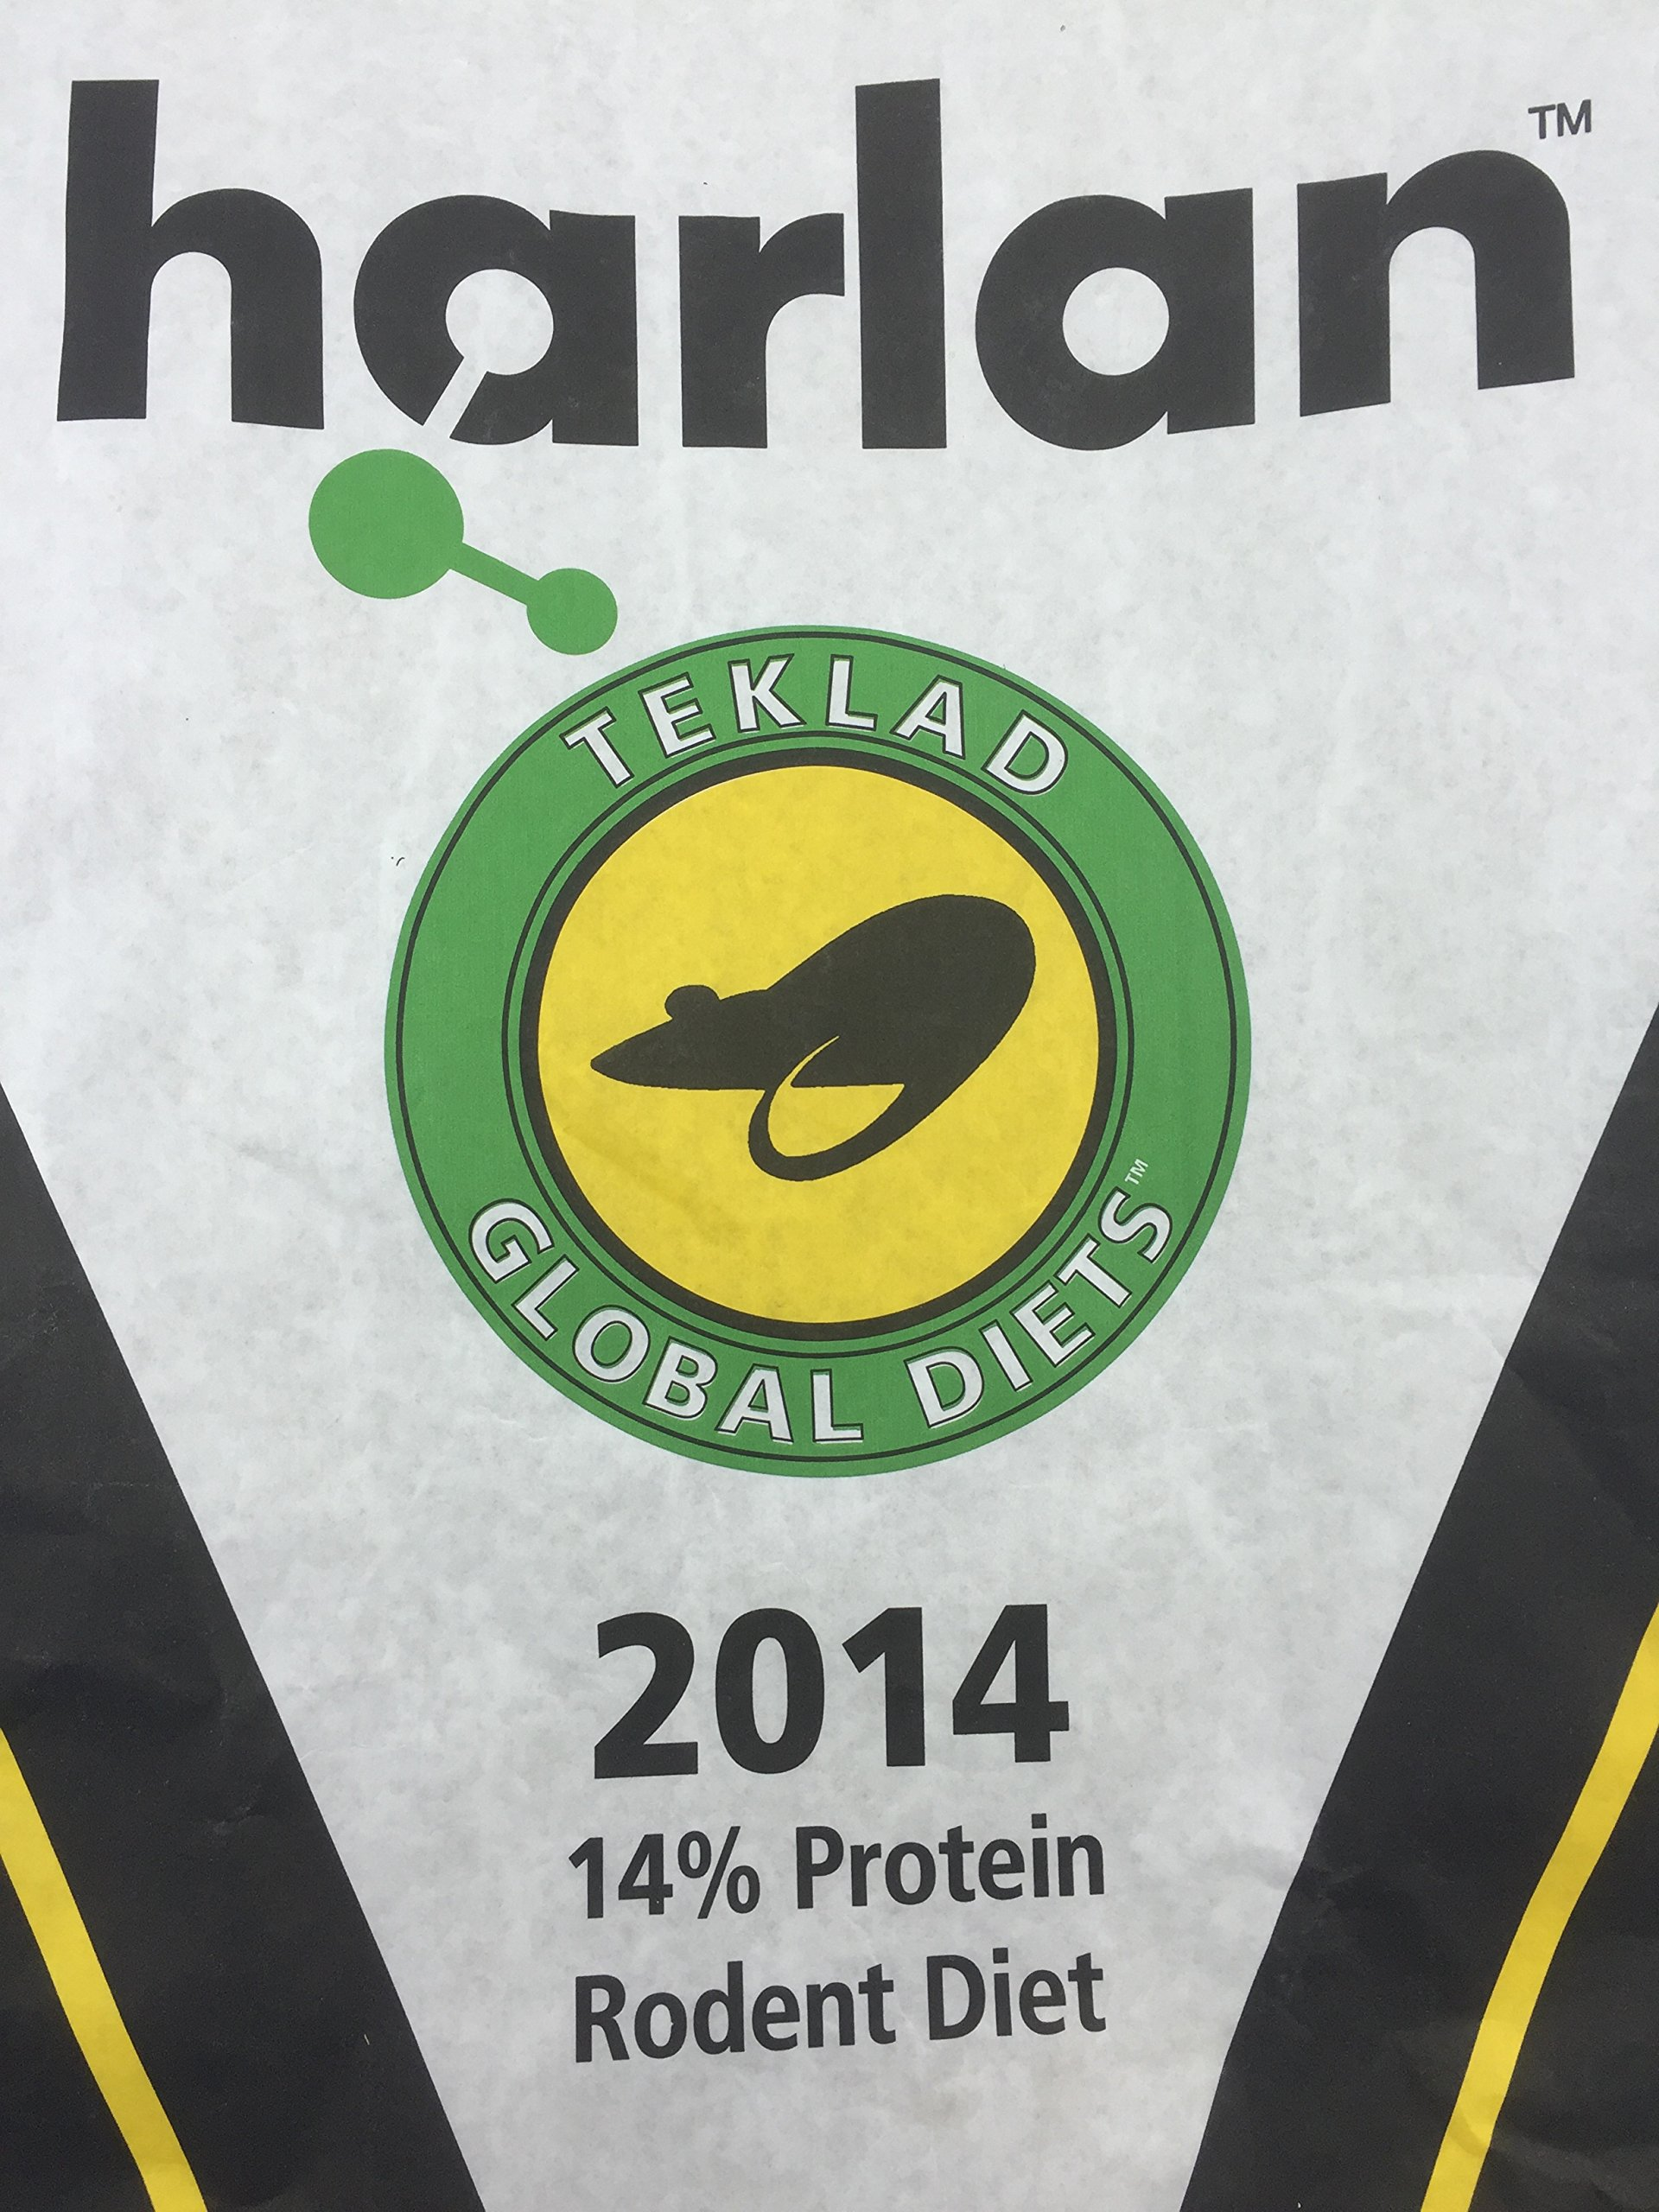 Nesom Distributing Harlan Teklad Global Rat Food Pellets 2014 (33lbs)